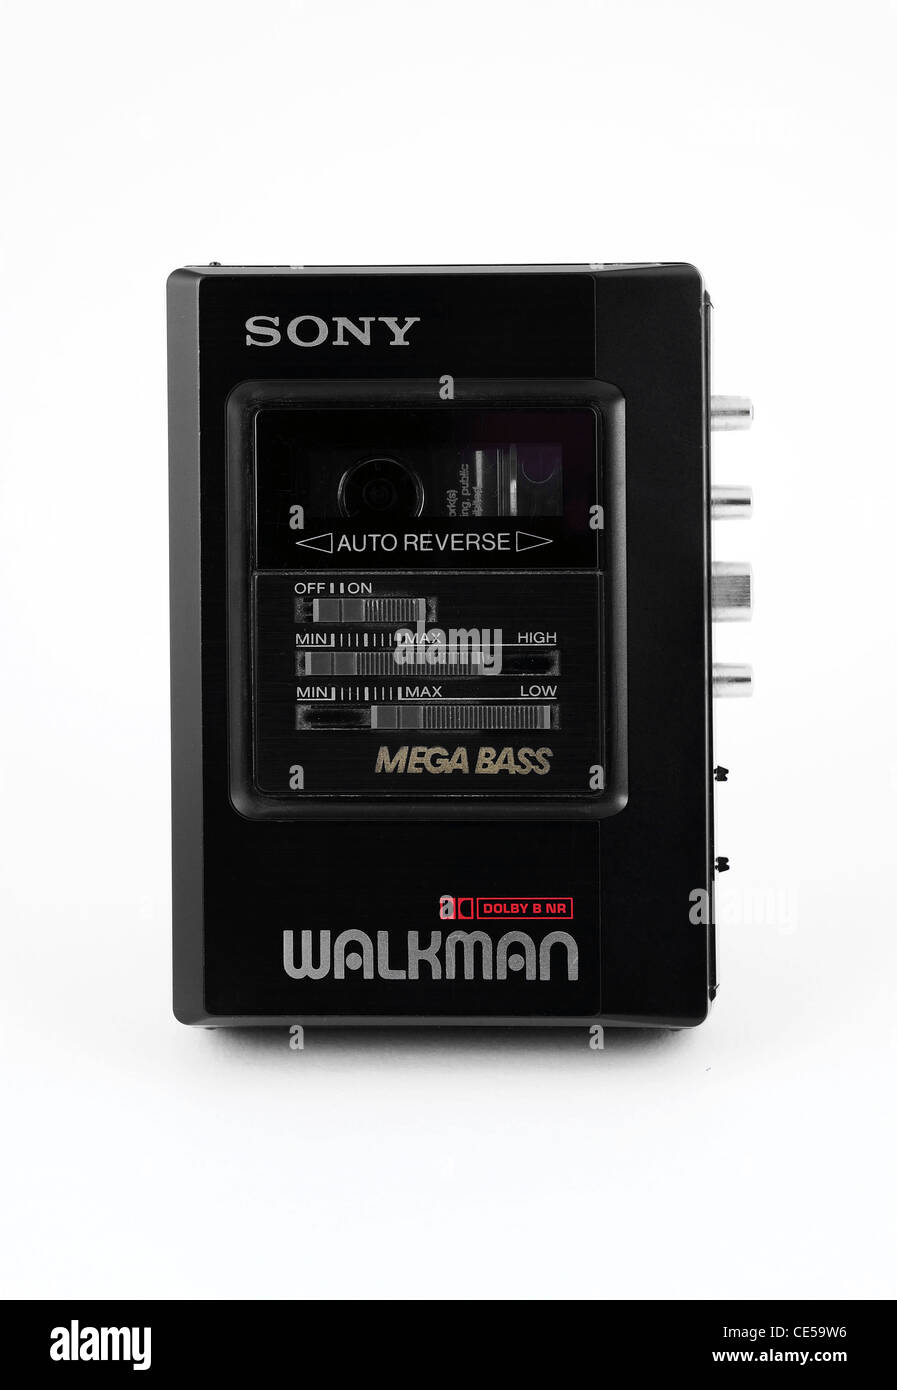 A 1980s Sony Walkman cassette player - Stock Image